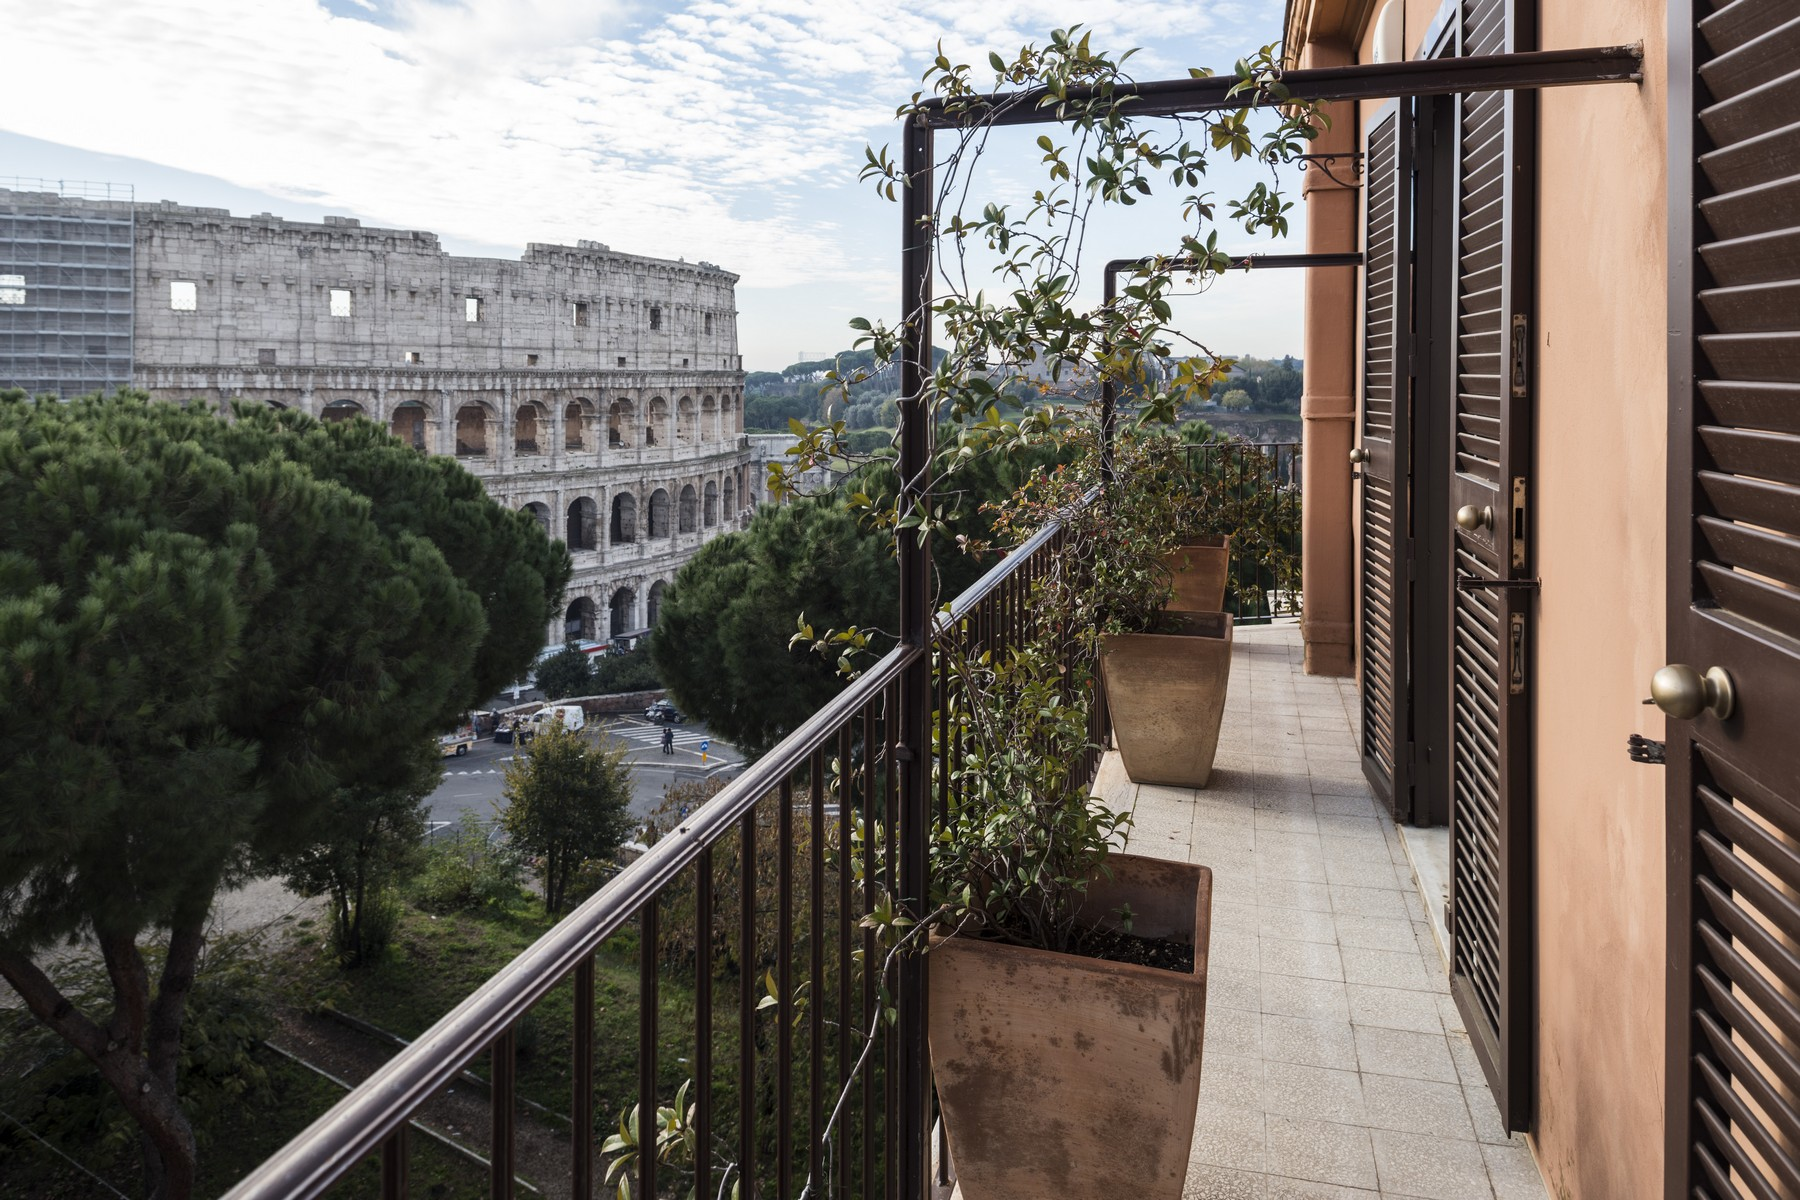 Additional photo for property listing at Penthouse overlooking the Colosseum and Imperial Forums with terrace Via del Monte Oppio Rome, Rome 00184 Italy